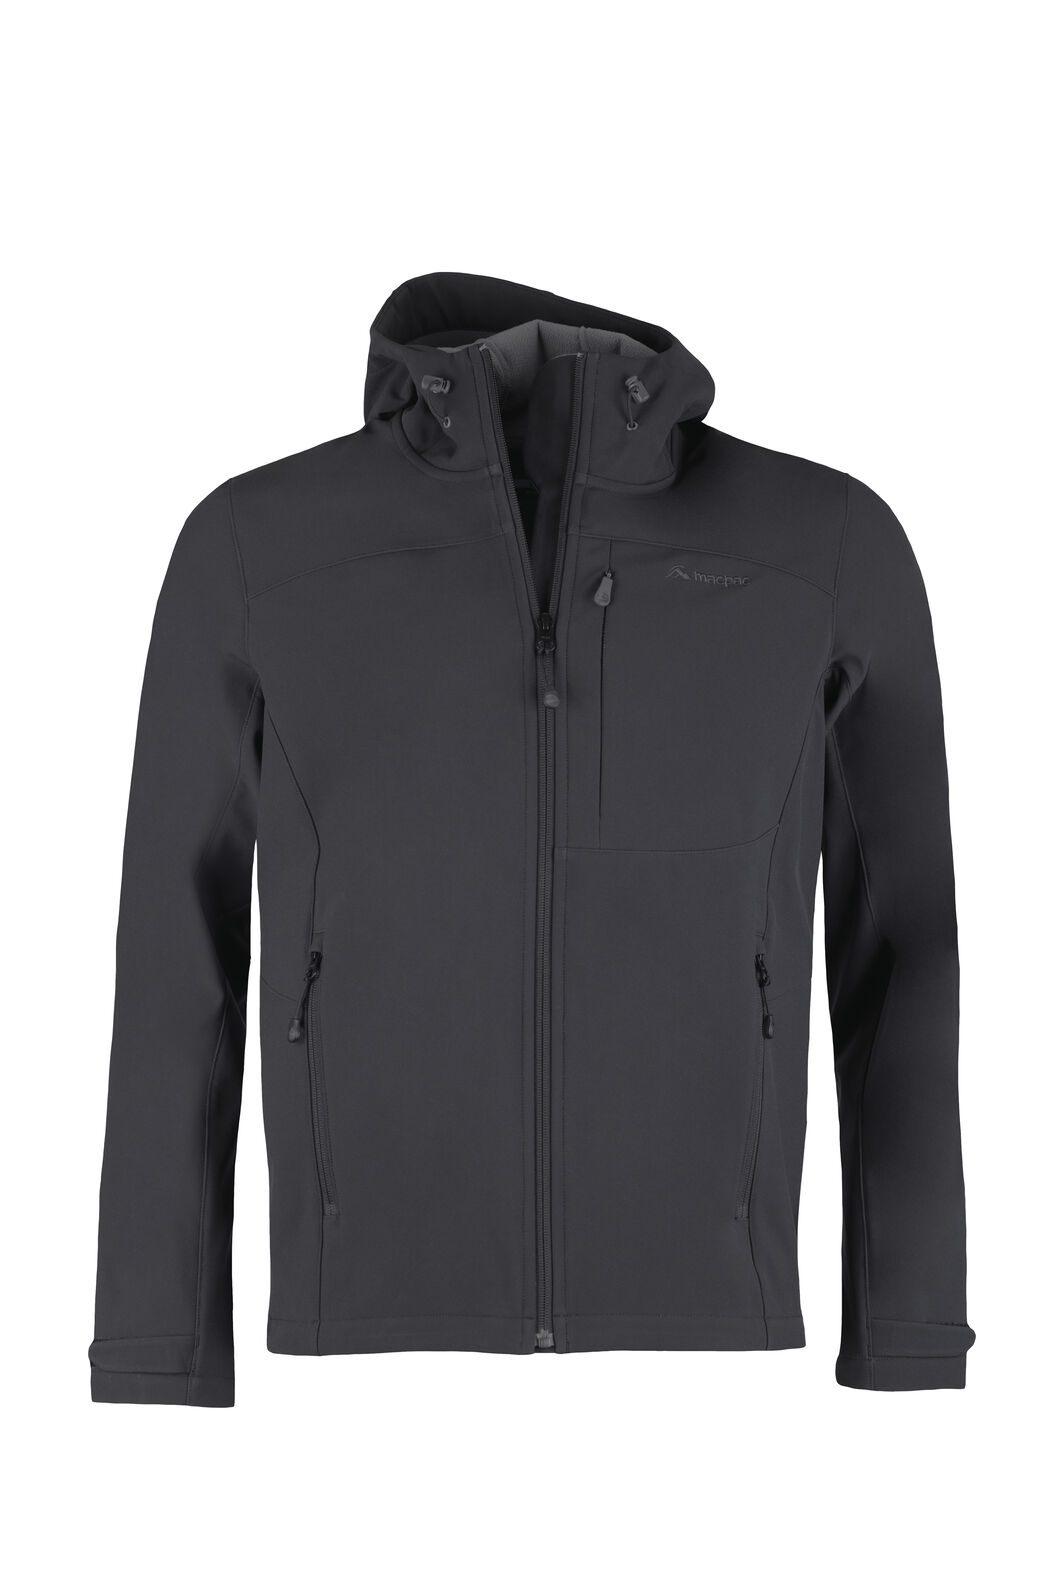 Macpac Sabre Hooded Softshell Jacket - Men's, Black, hi-res